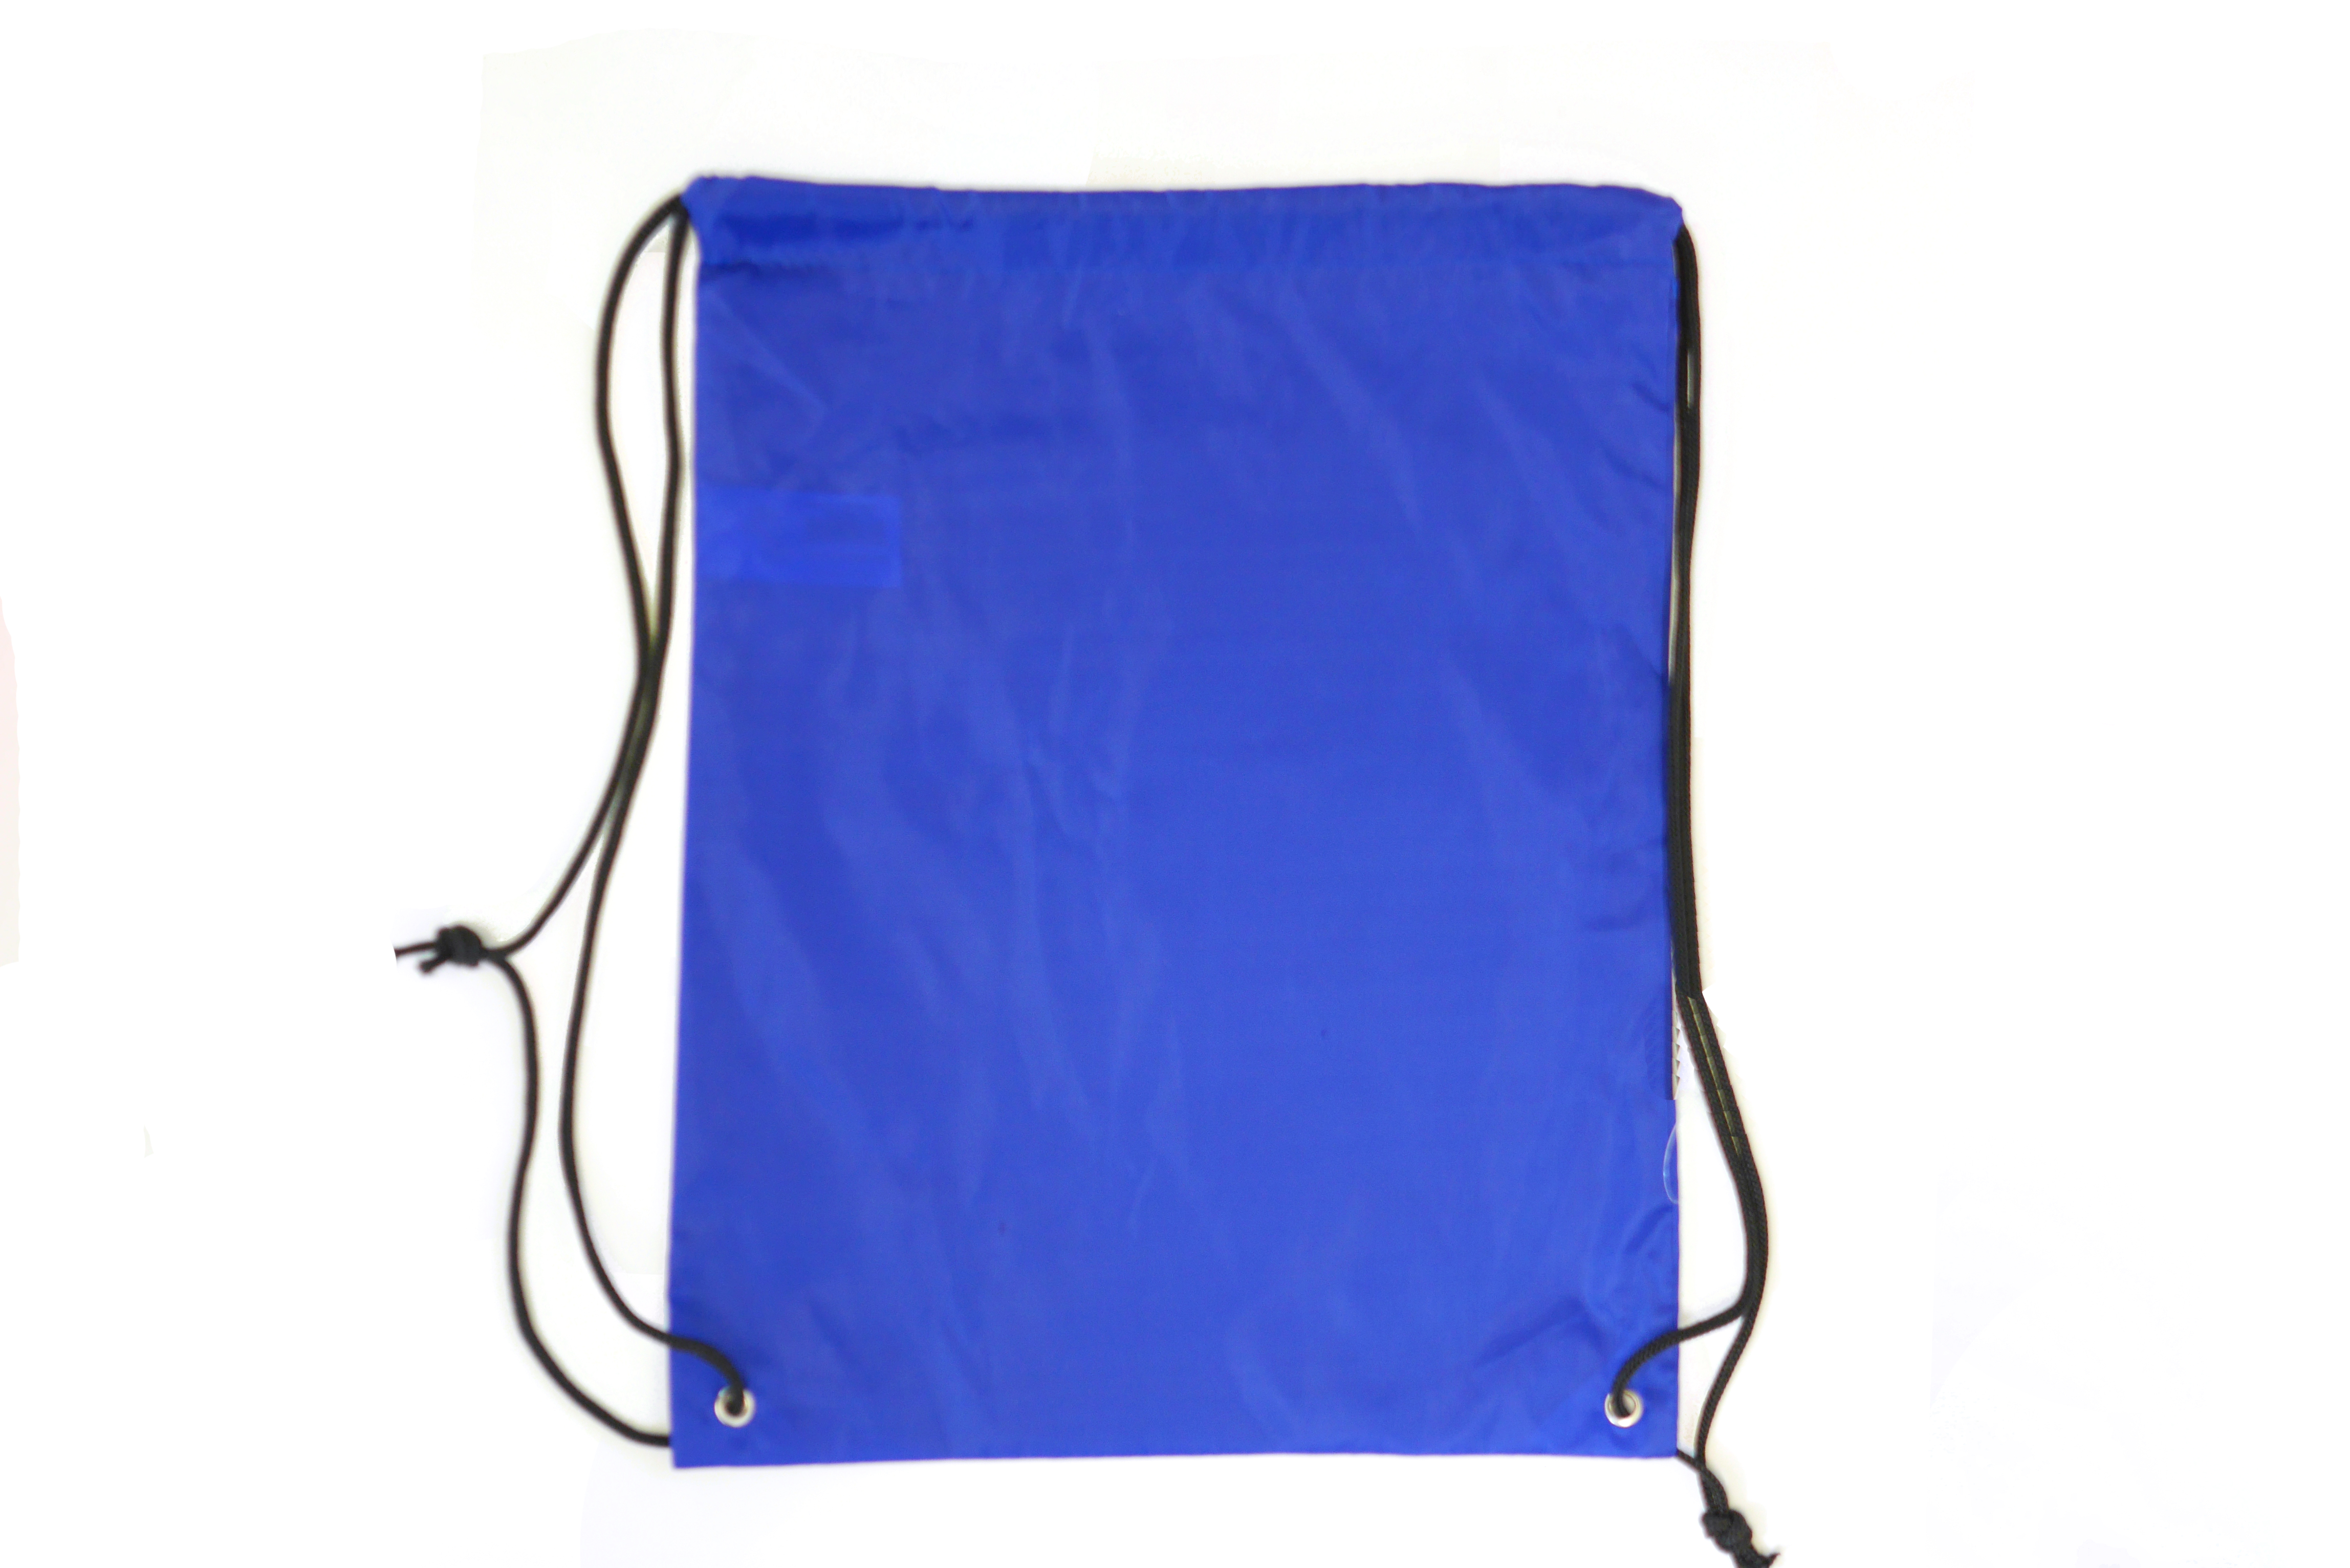 8a528ad1a11f 210D POLYESTER DRAWSTRING BACKPACK (ROYAL BLUE) – ABI USA Group